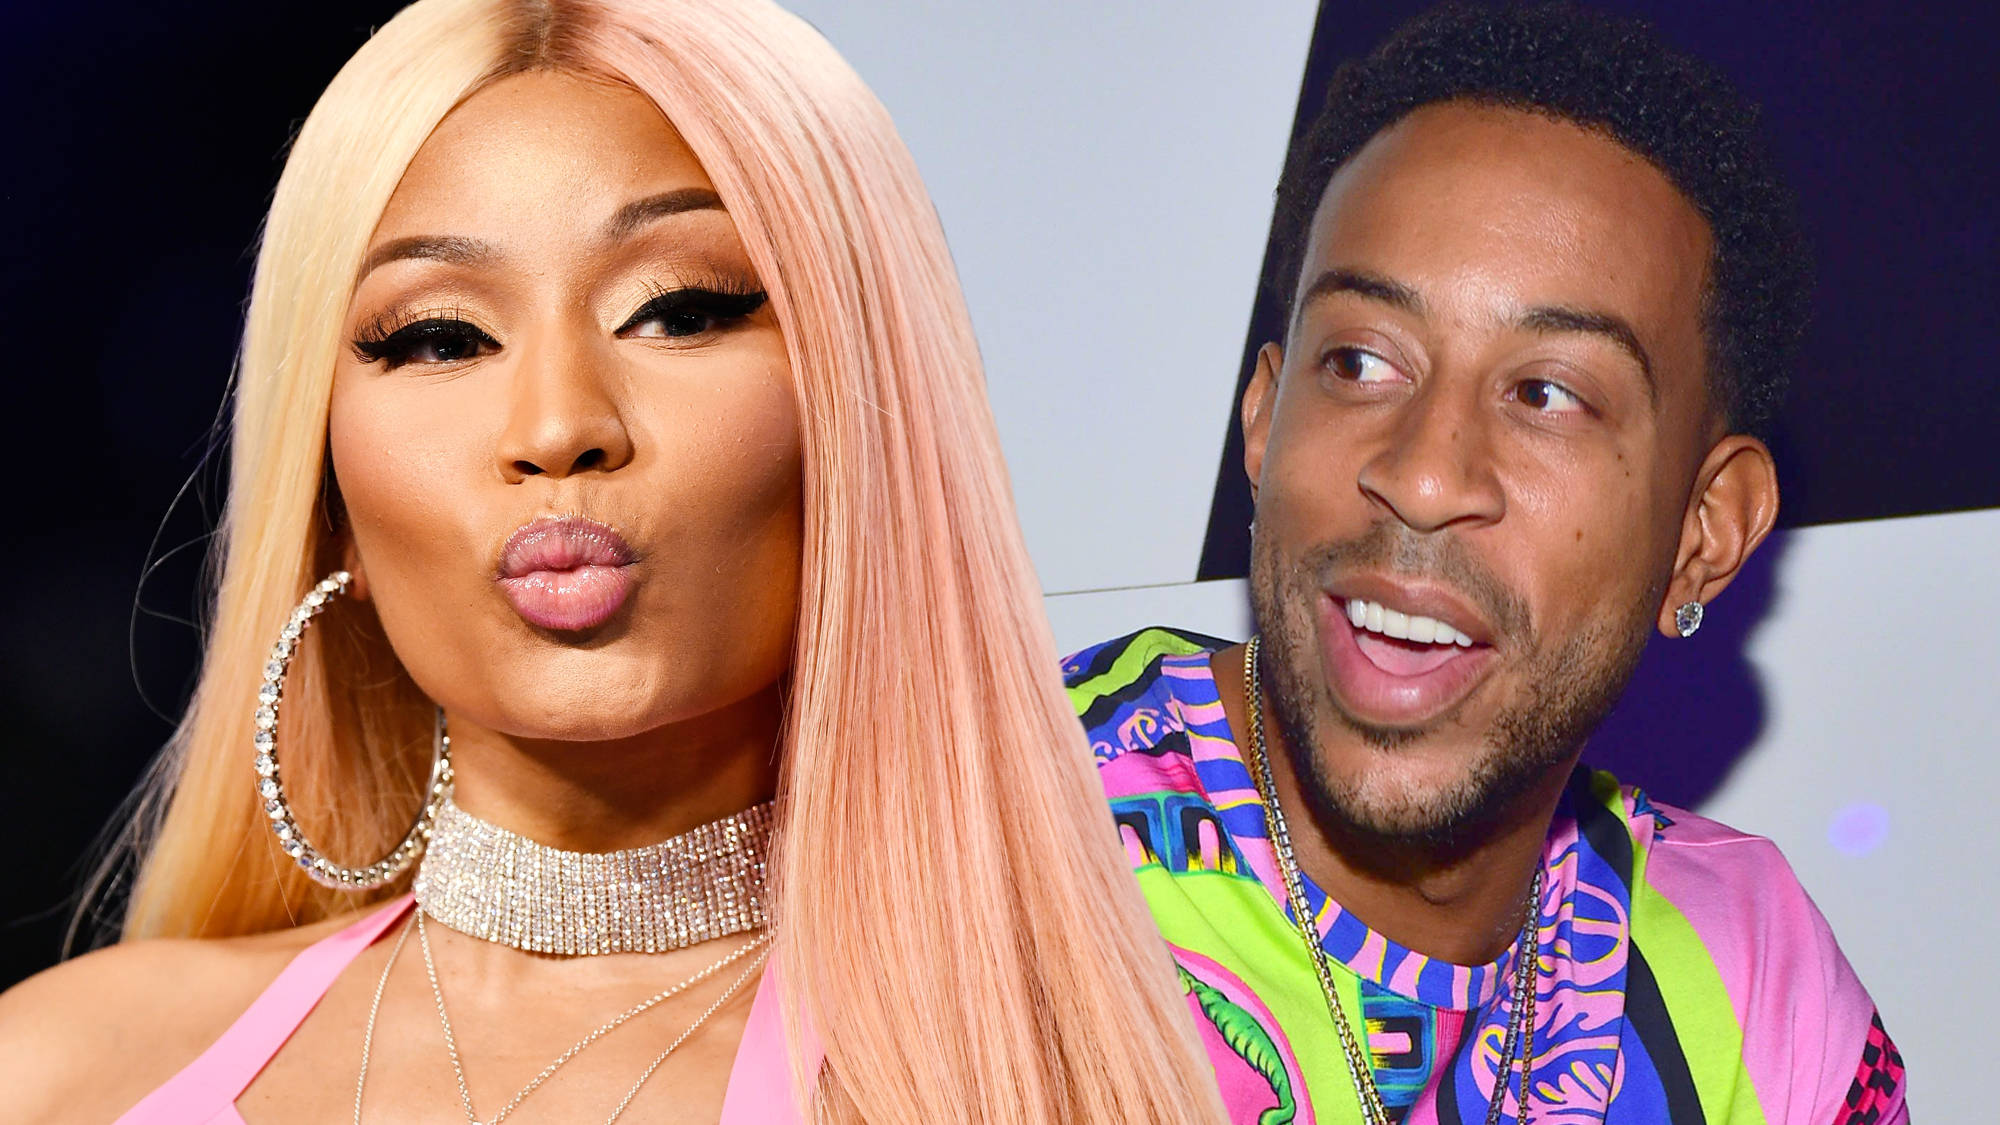 Nicki Minaj Fans SLAM Ludacris For Supporting Shawnna After She 'Shaded' The Rapstress